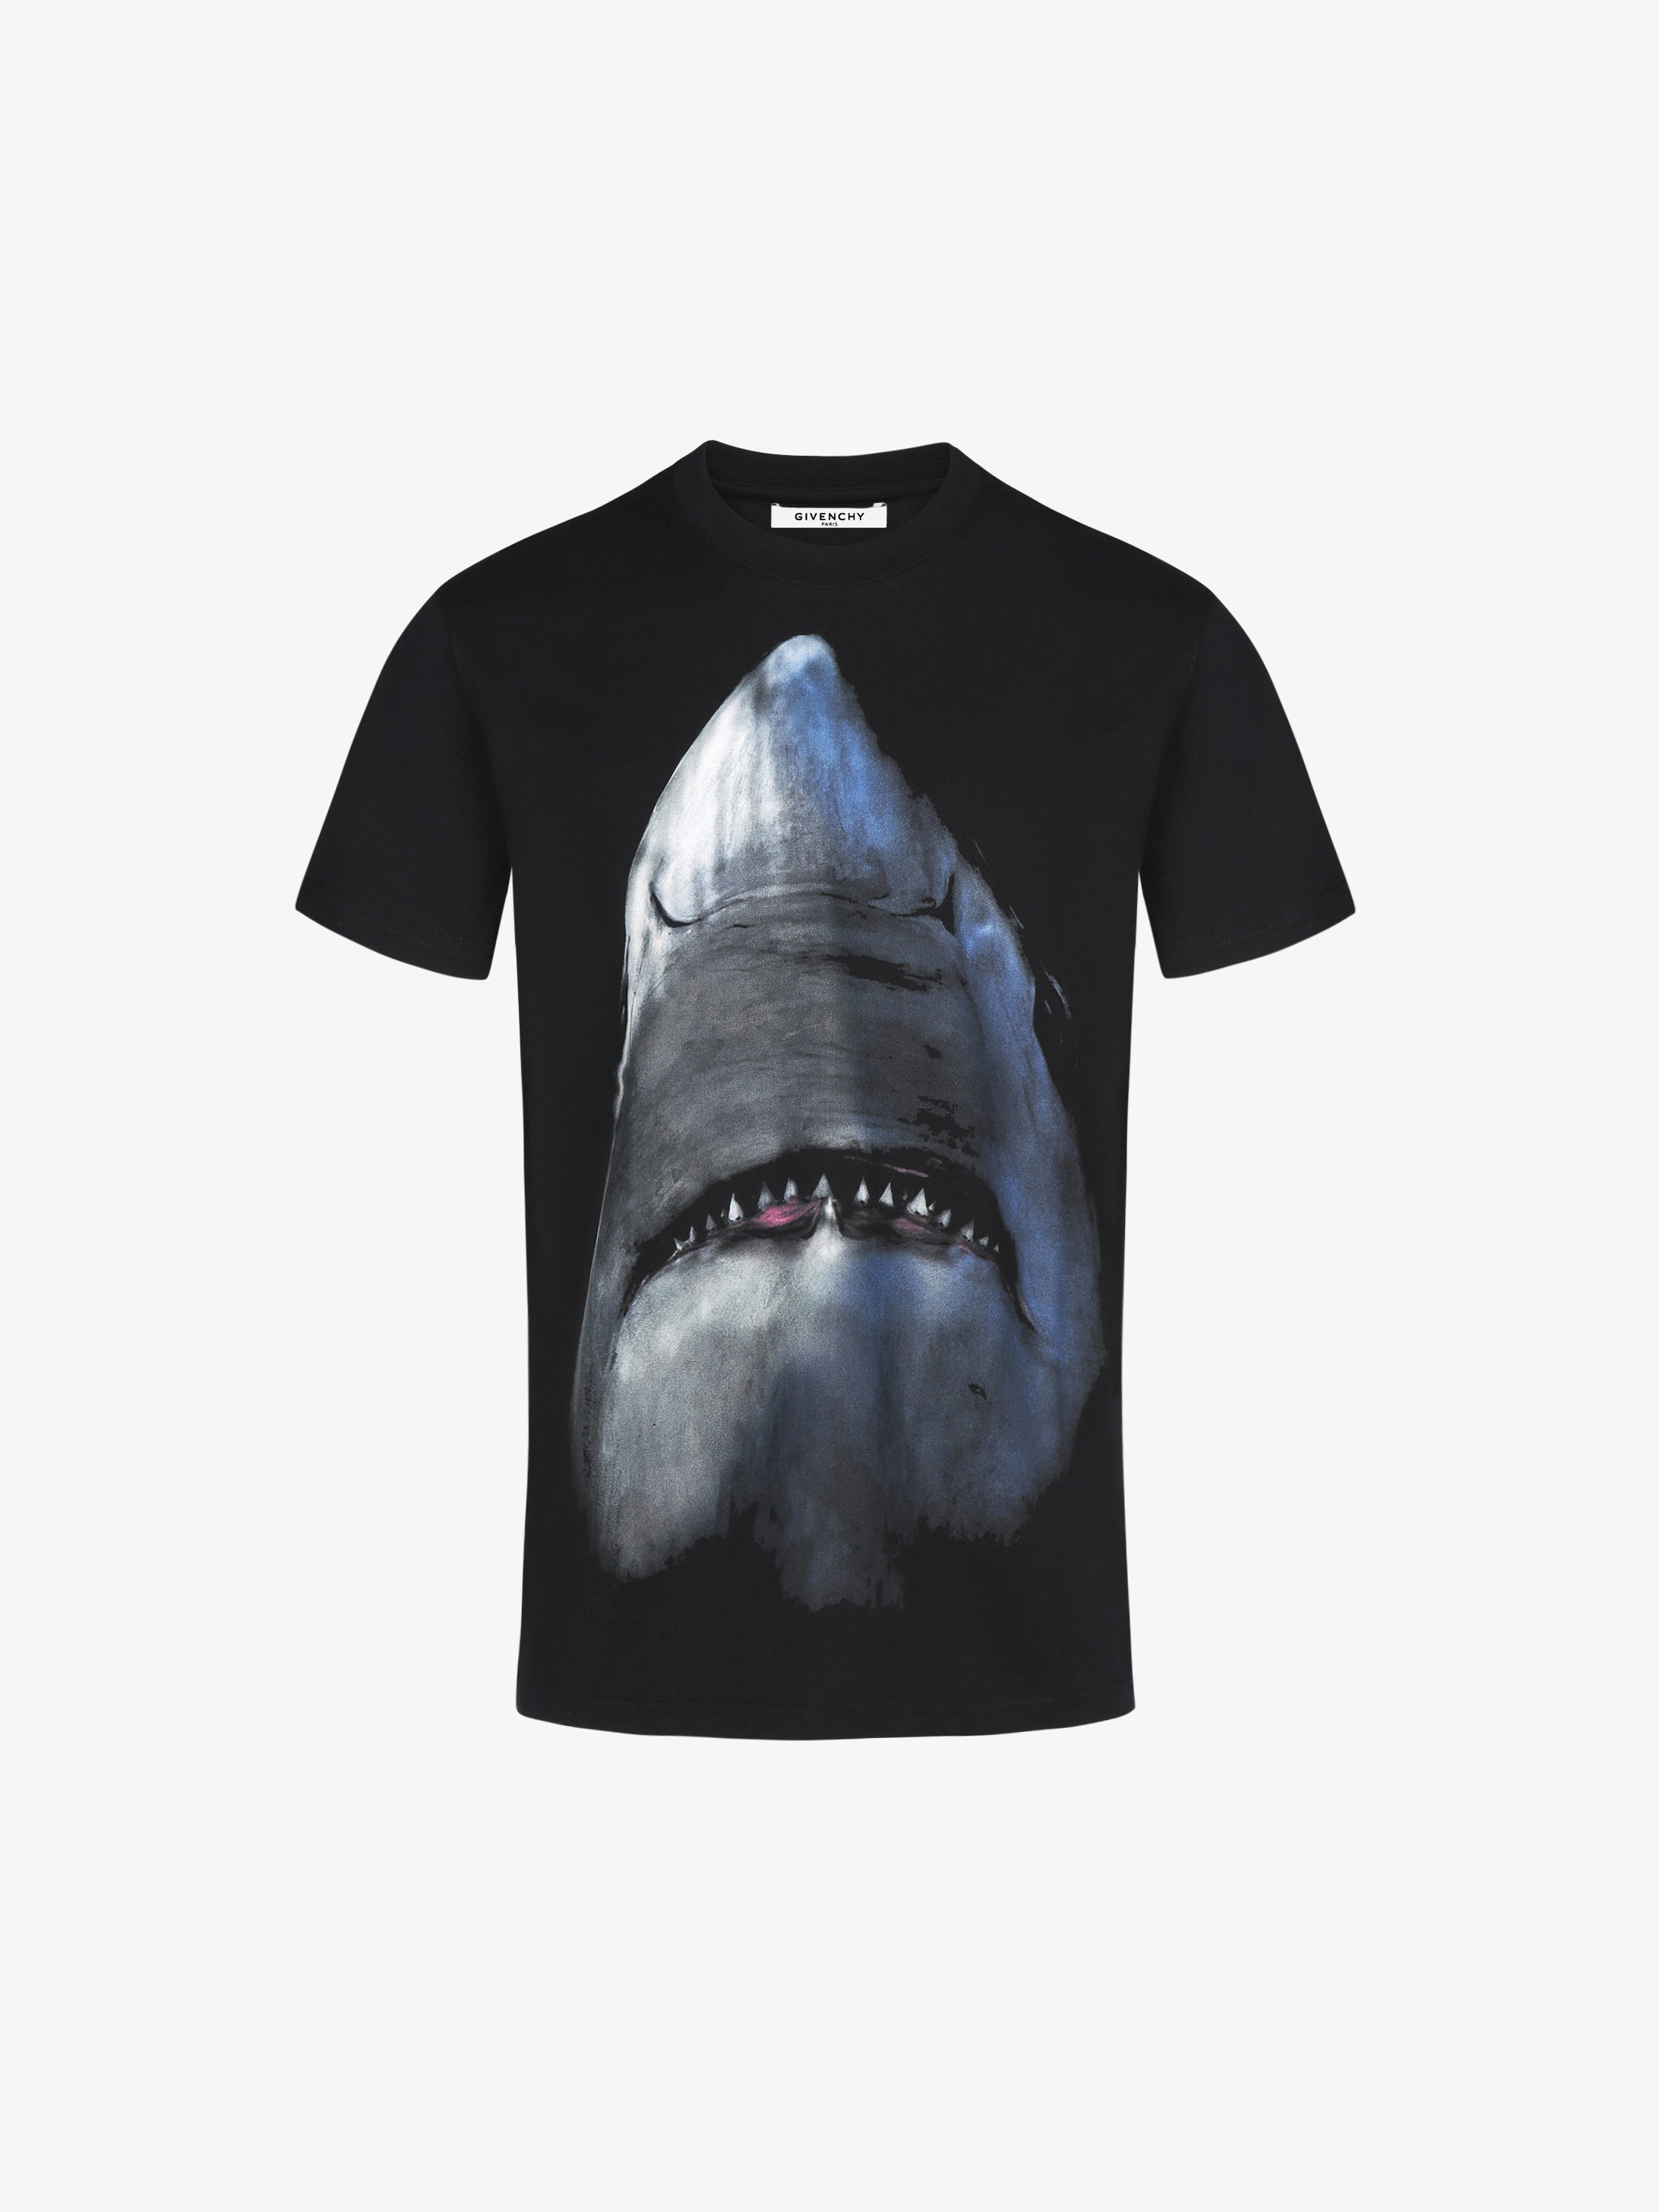 givenchy shark printed t shirt givenchy paris. Black Bedroom Furniture Sets. Home Design Ideas